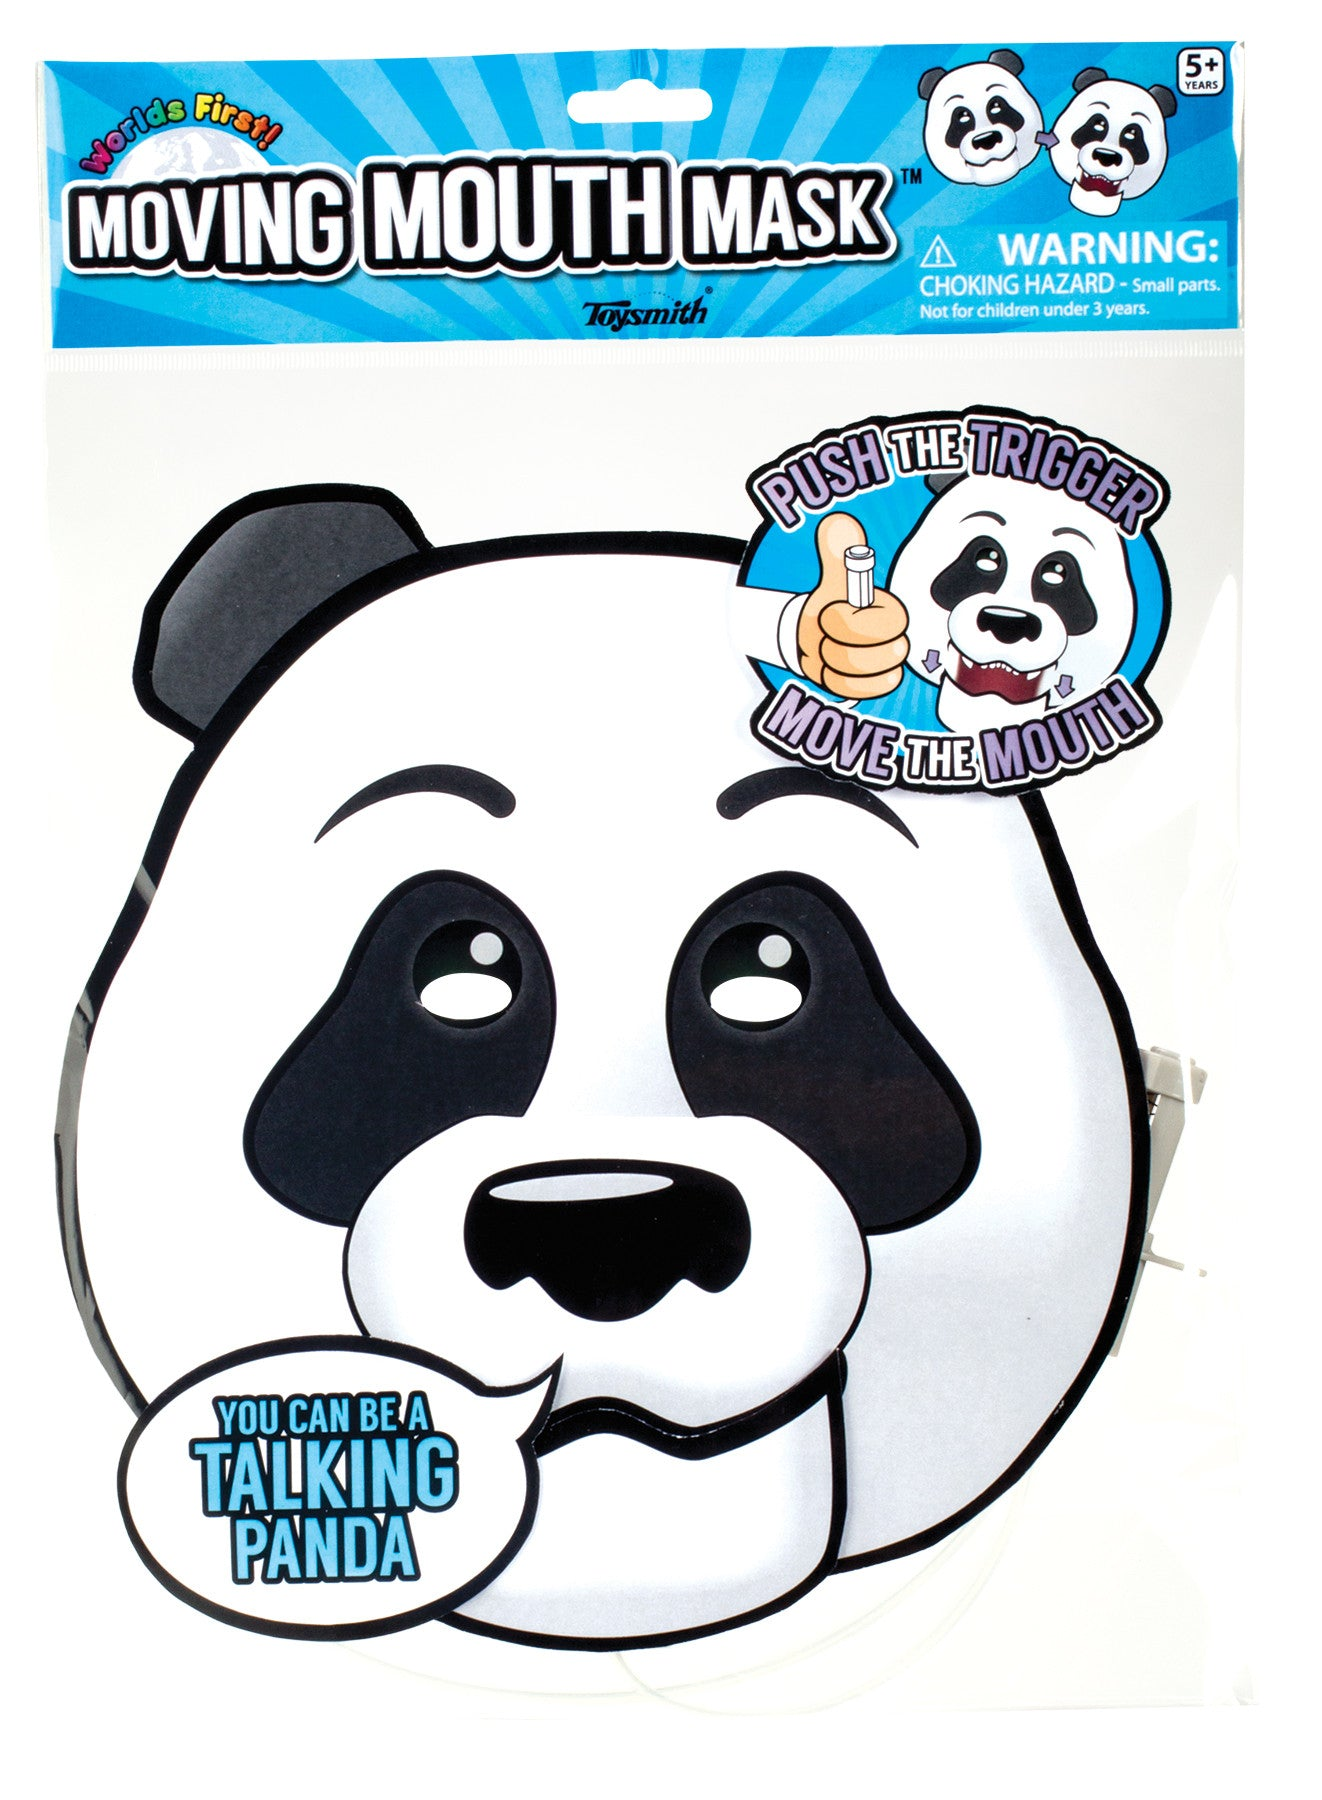 Paper Panda Face Moving Mouth Mask Talking Headz Critter - Off The Wall Toys and Gifts